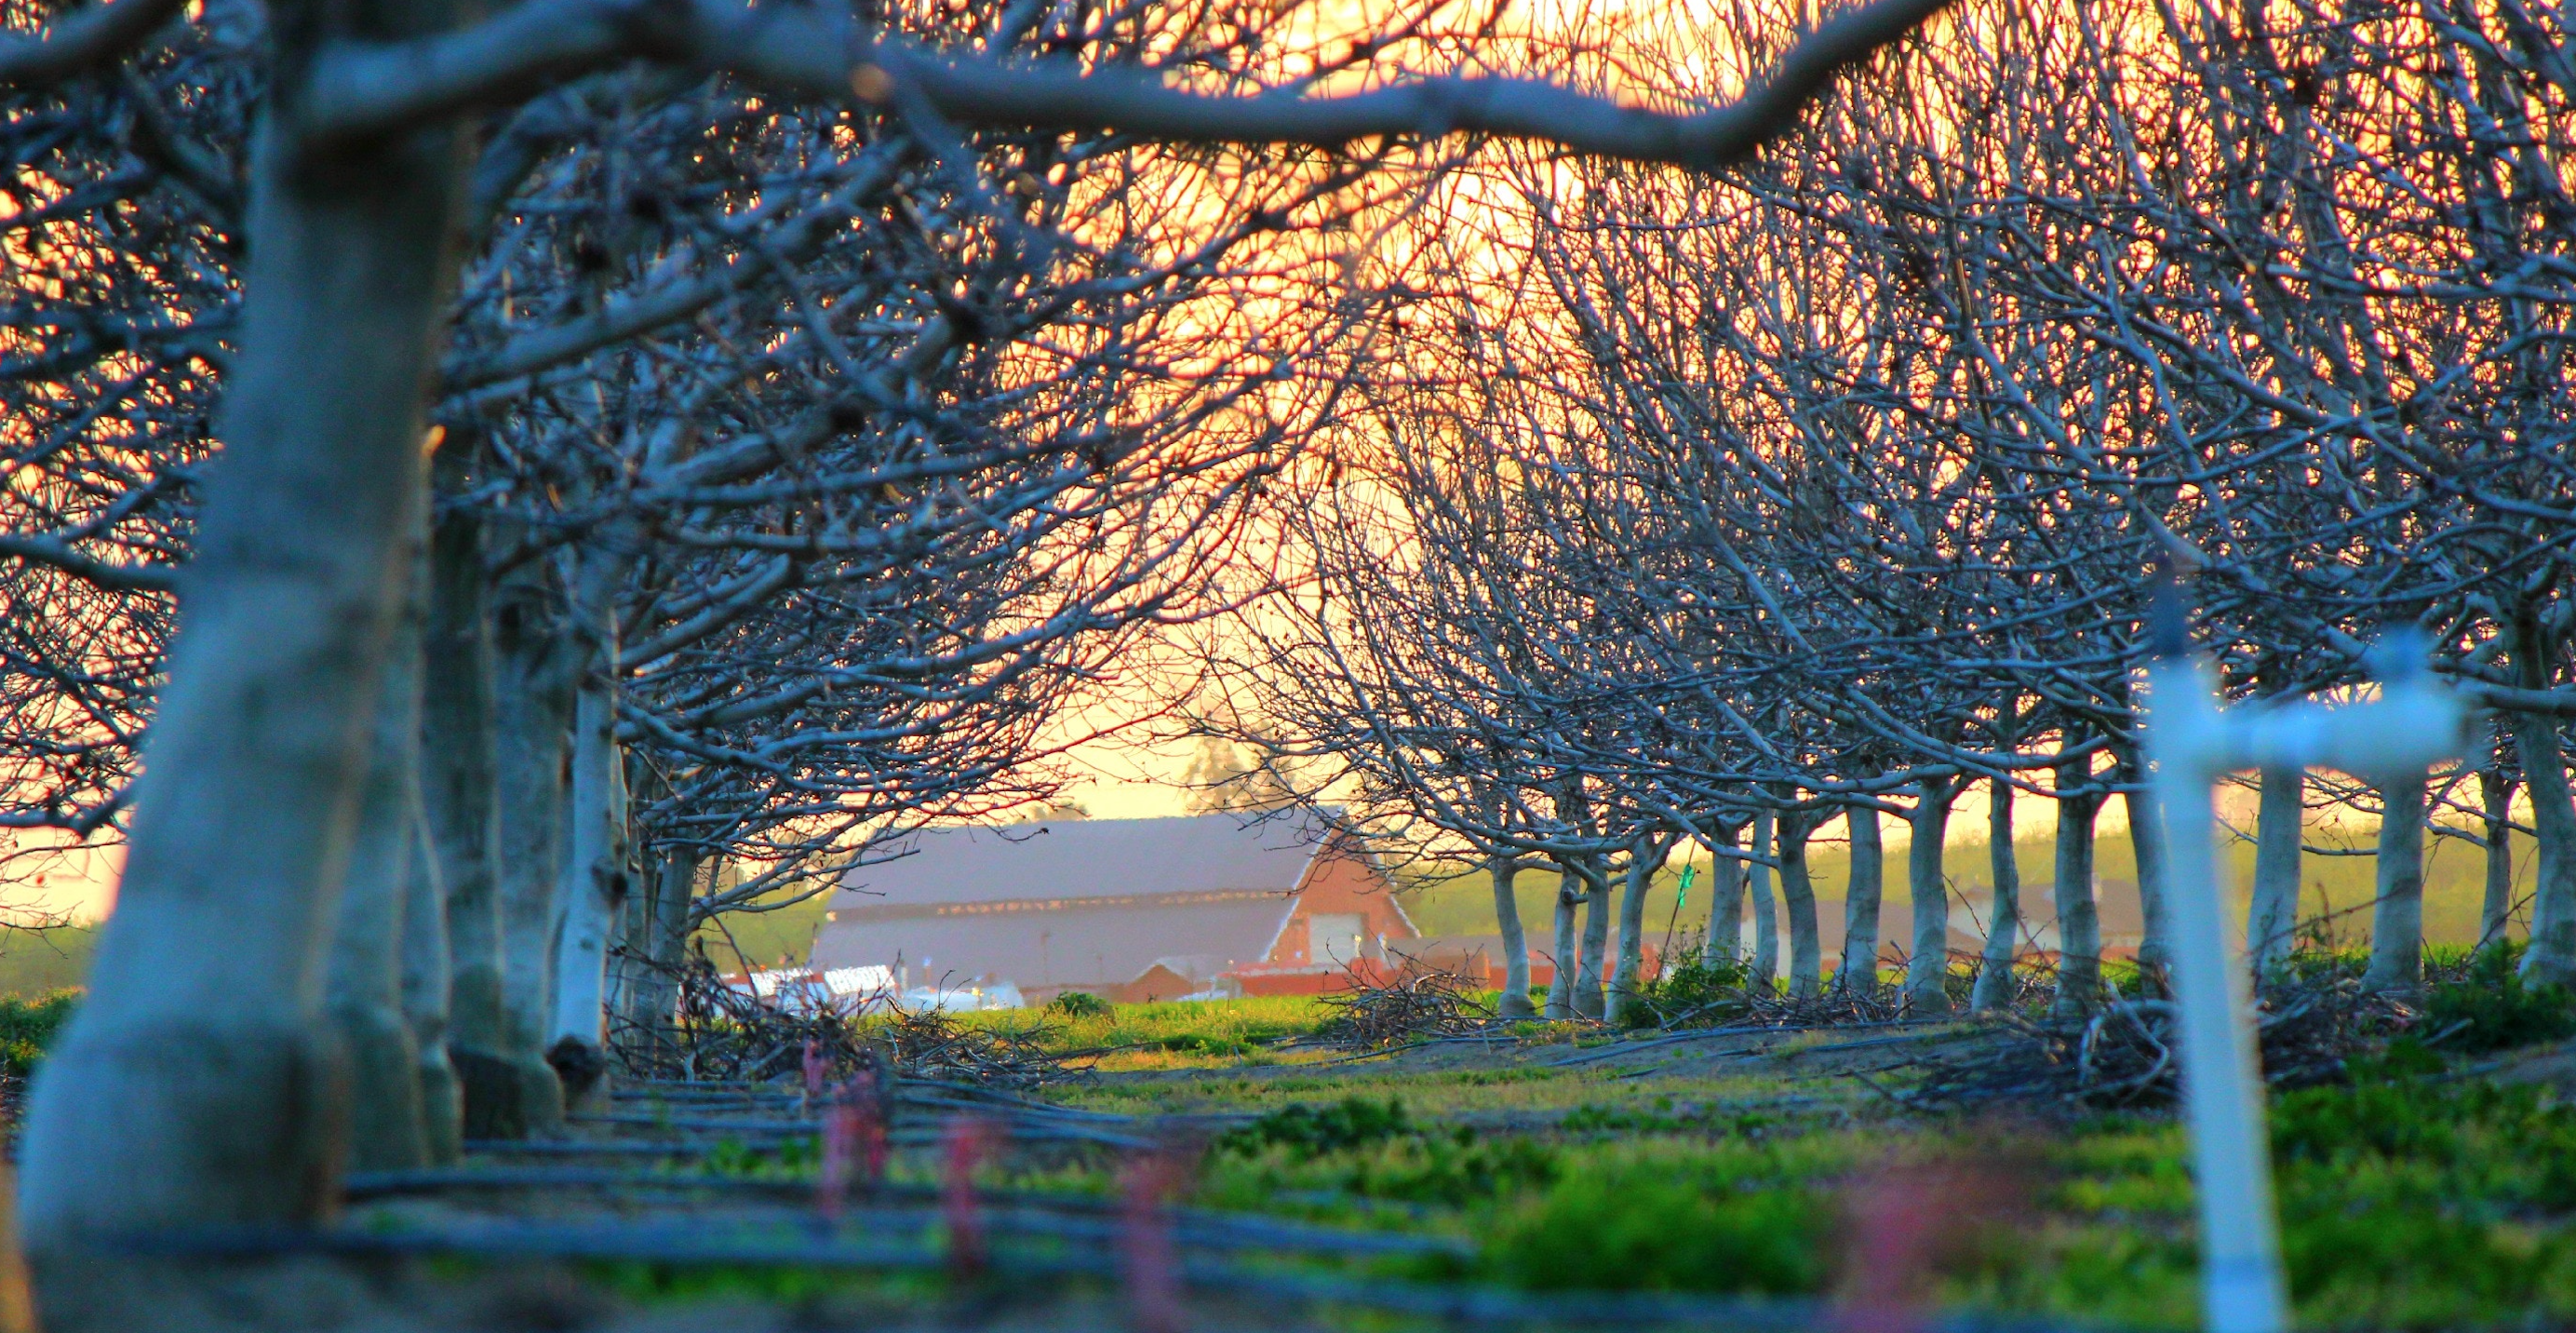 image of barn through trees in distance